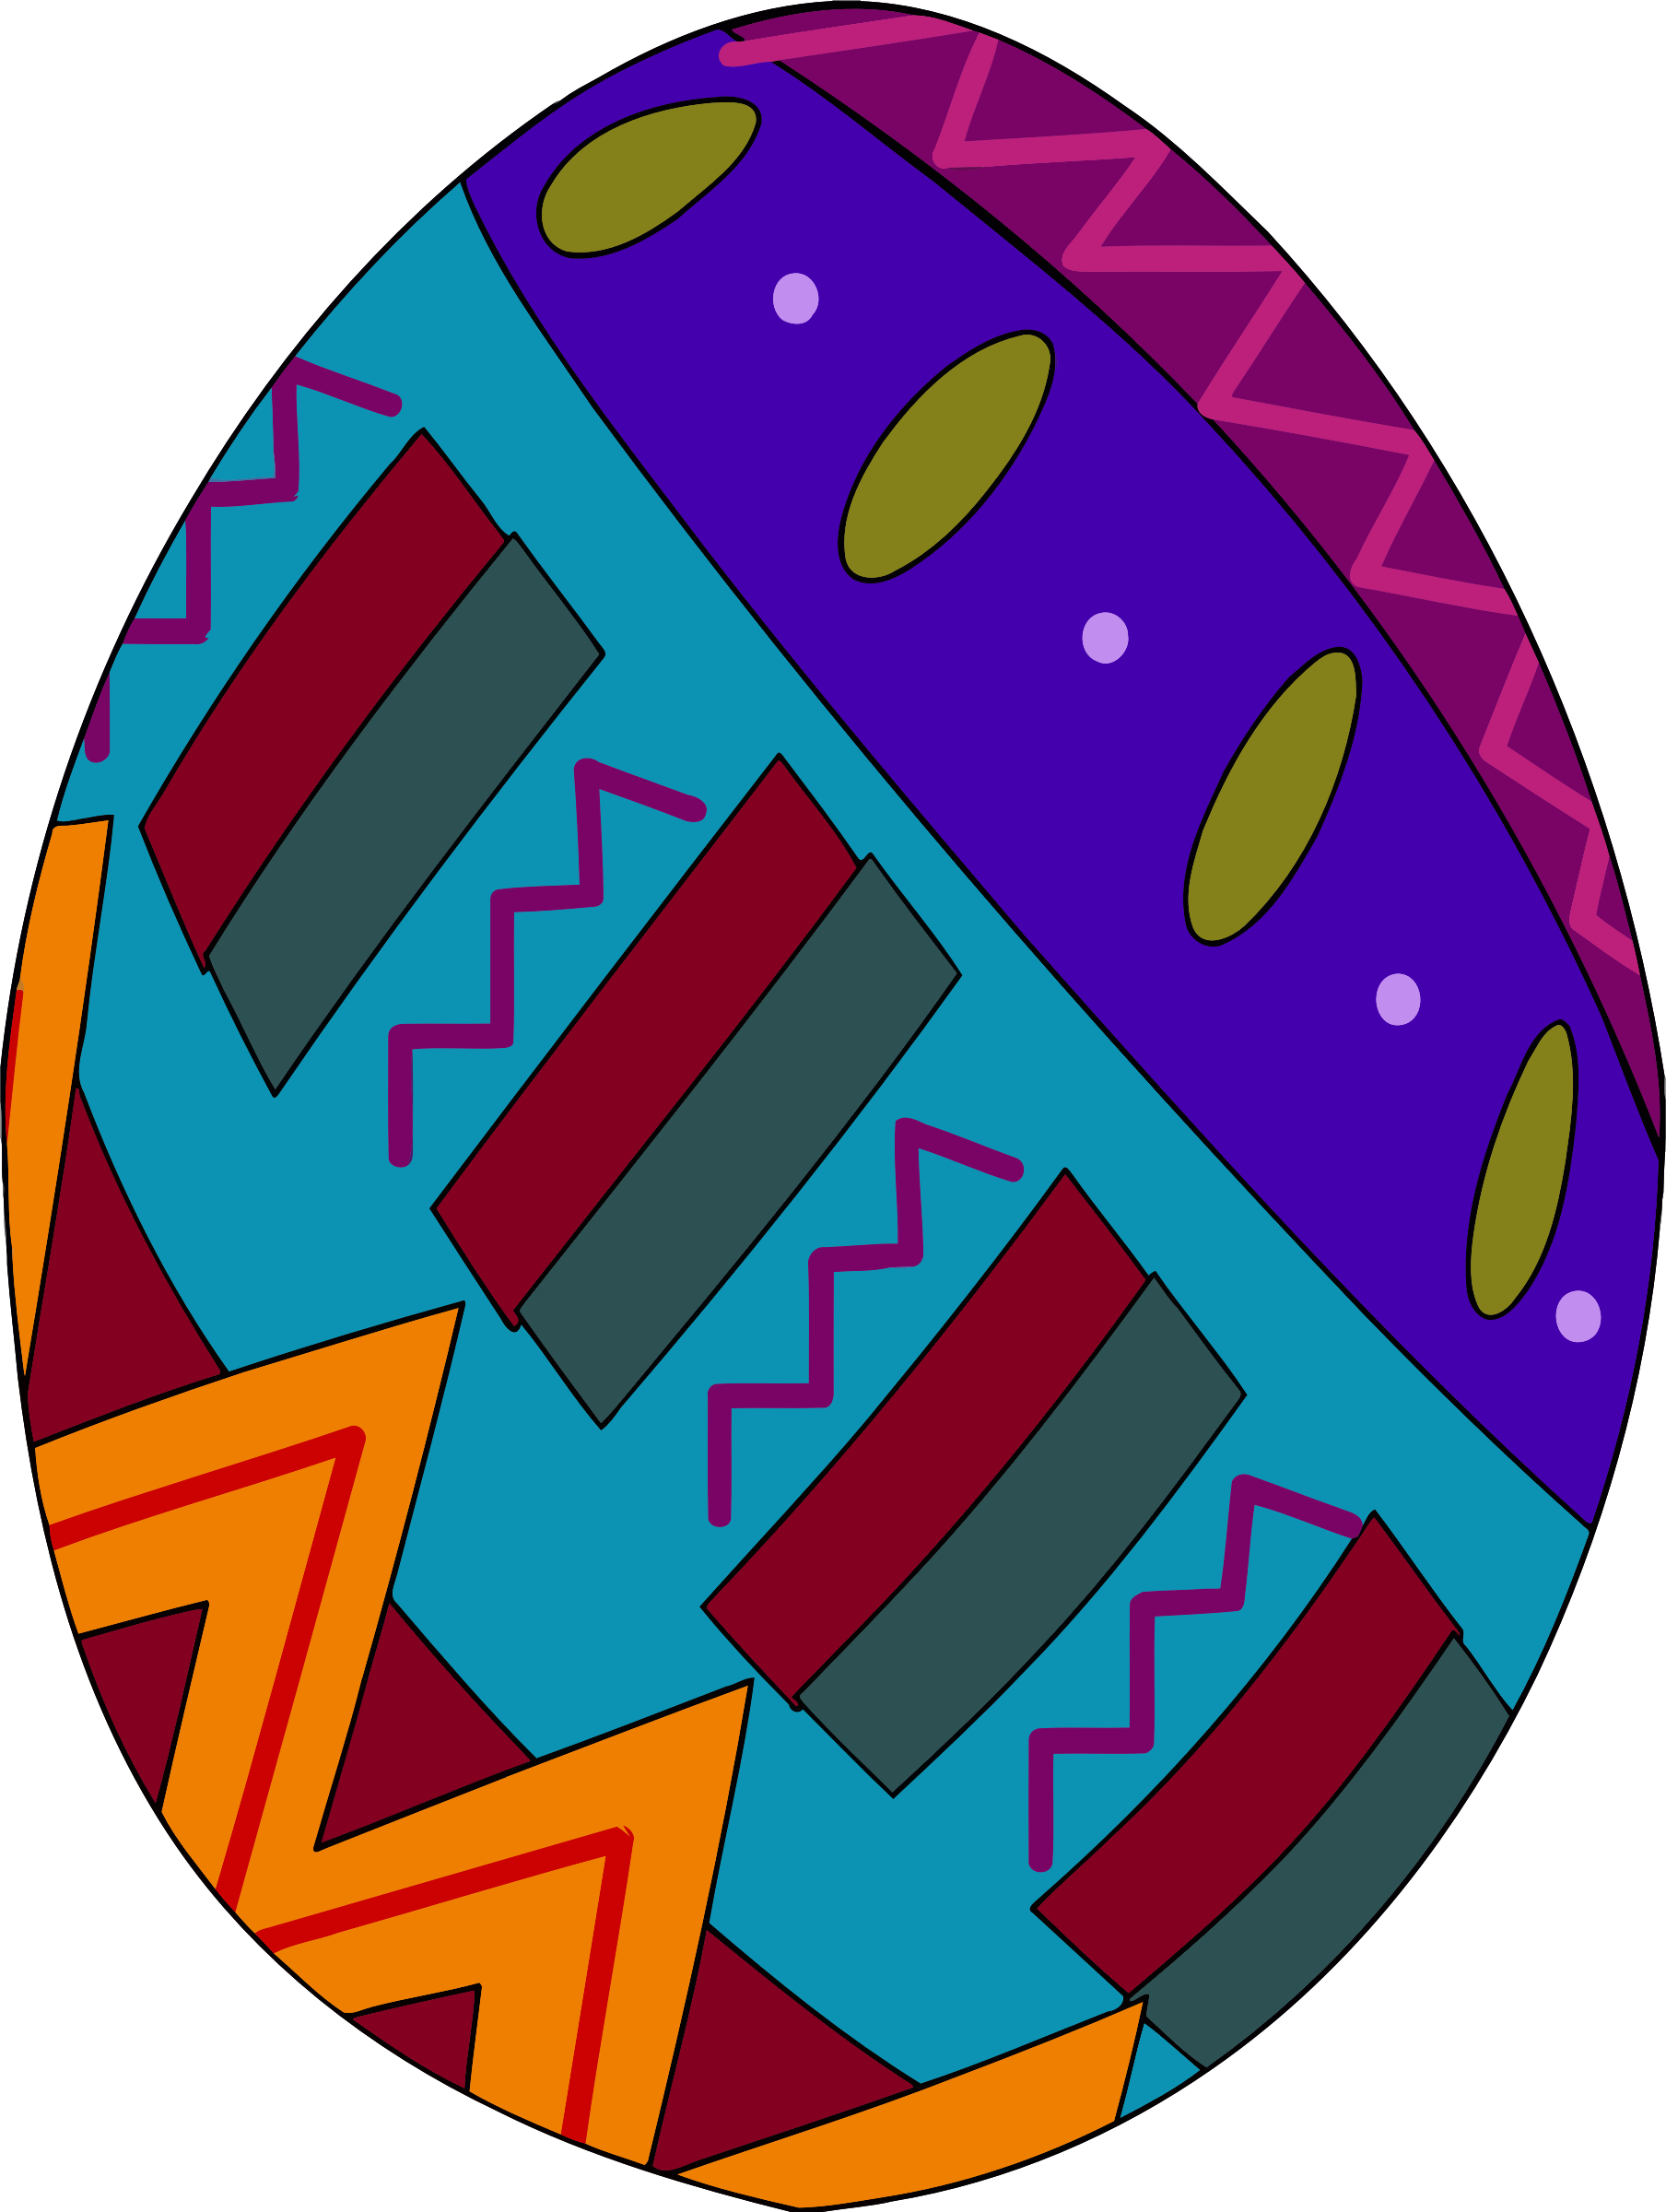 Decorative egg 1 by Firkin